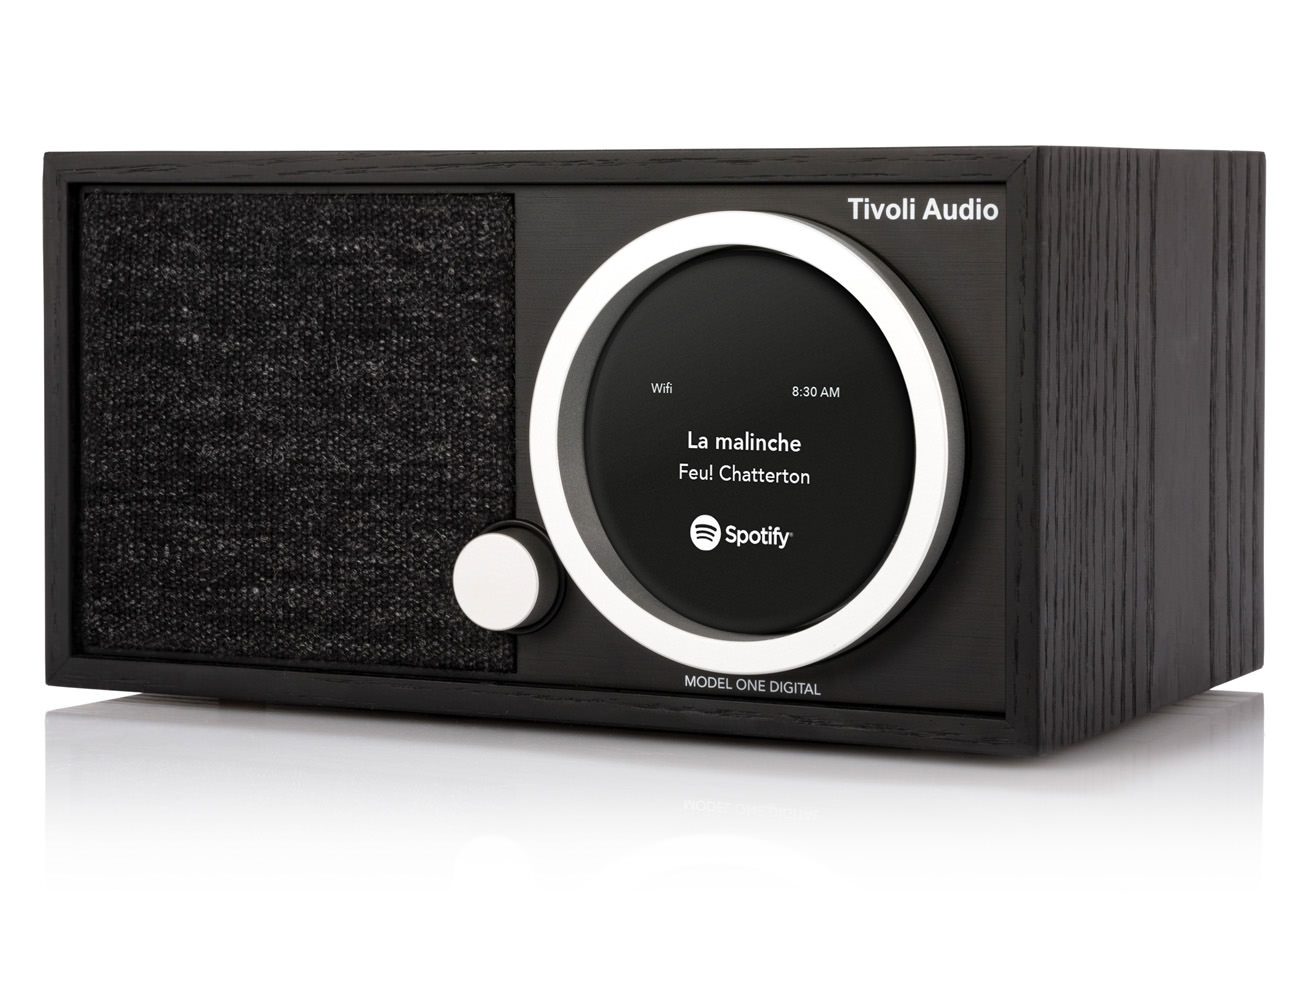 Tivoli Audio Digital Tivoli Audio Model One Digital Connected Radio Gadget Flow